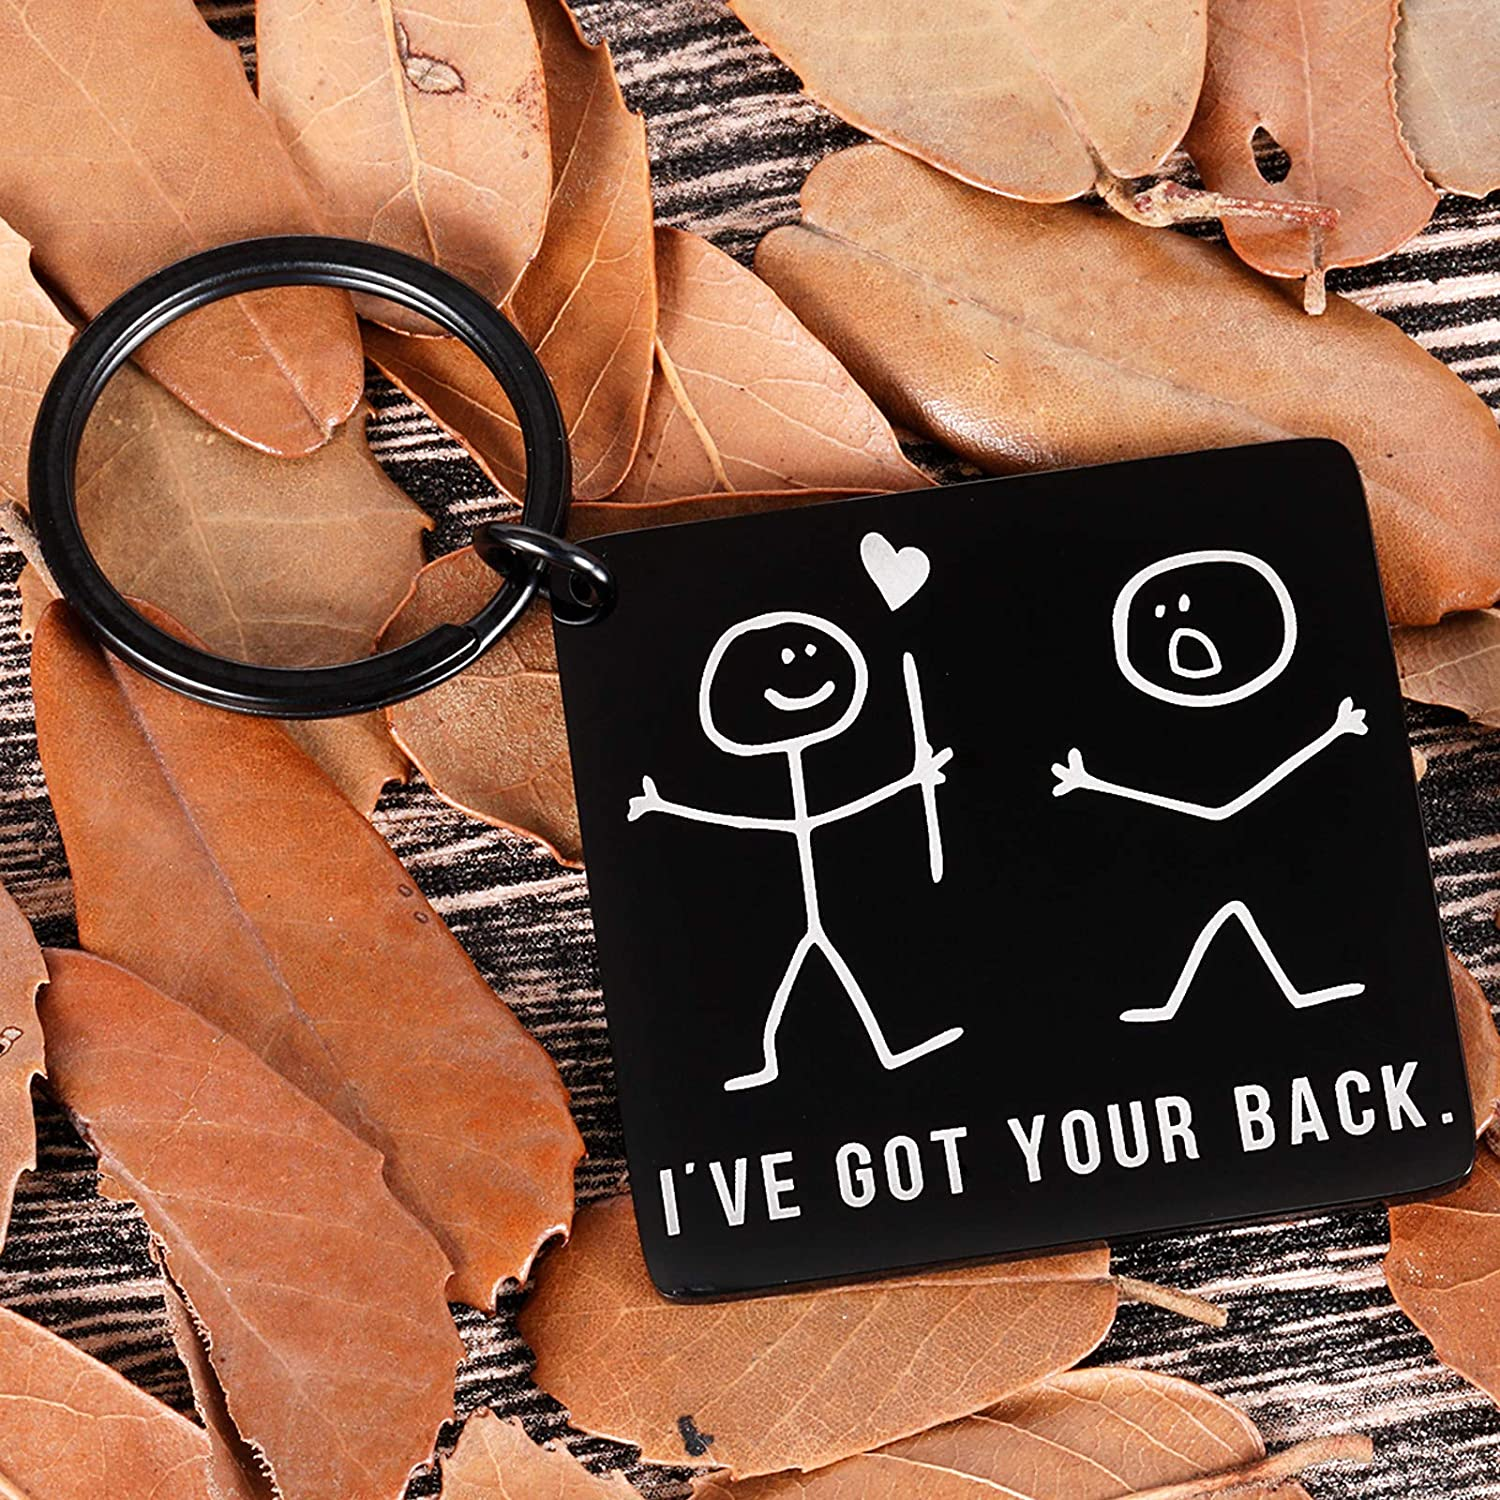 I've Got Your Back Keychain Funny Stick Figures Best Friend Gag Gifts for Her Him BFF Friend Brother Sister Besties Boyfriend Birthday Christmas Valentine Graduation Friendship Gift for Women Men